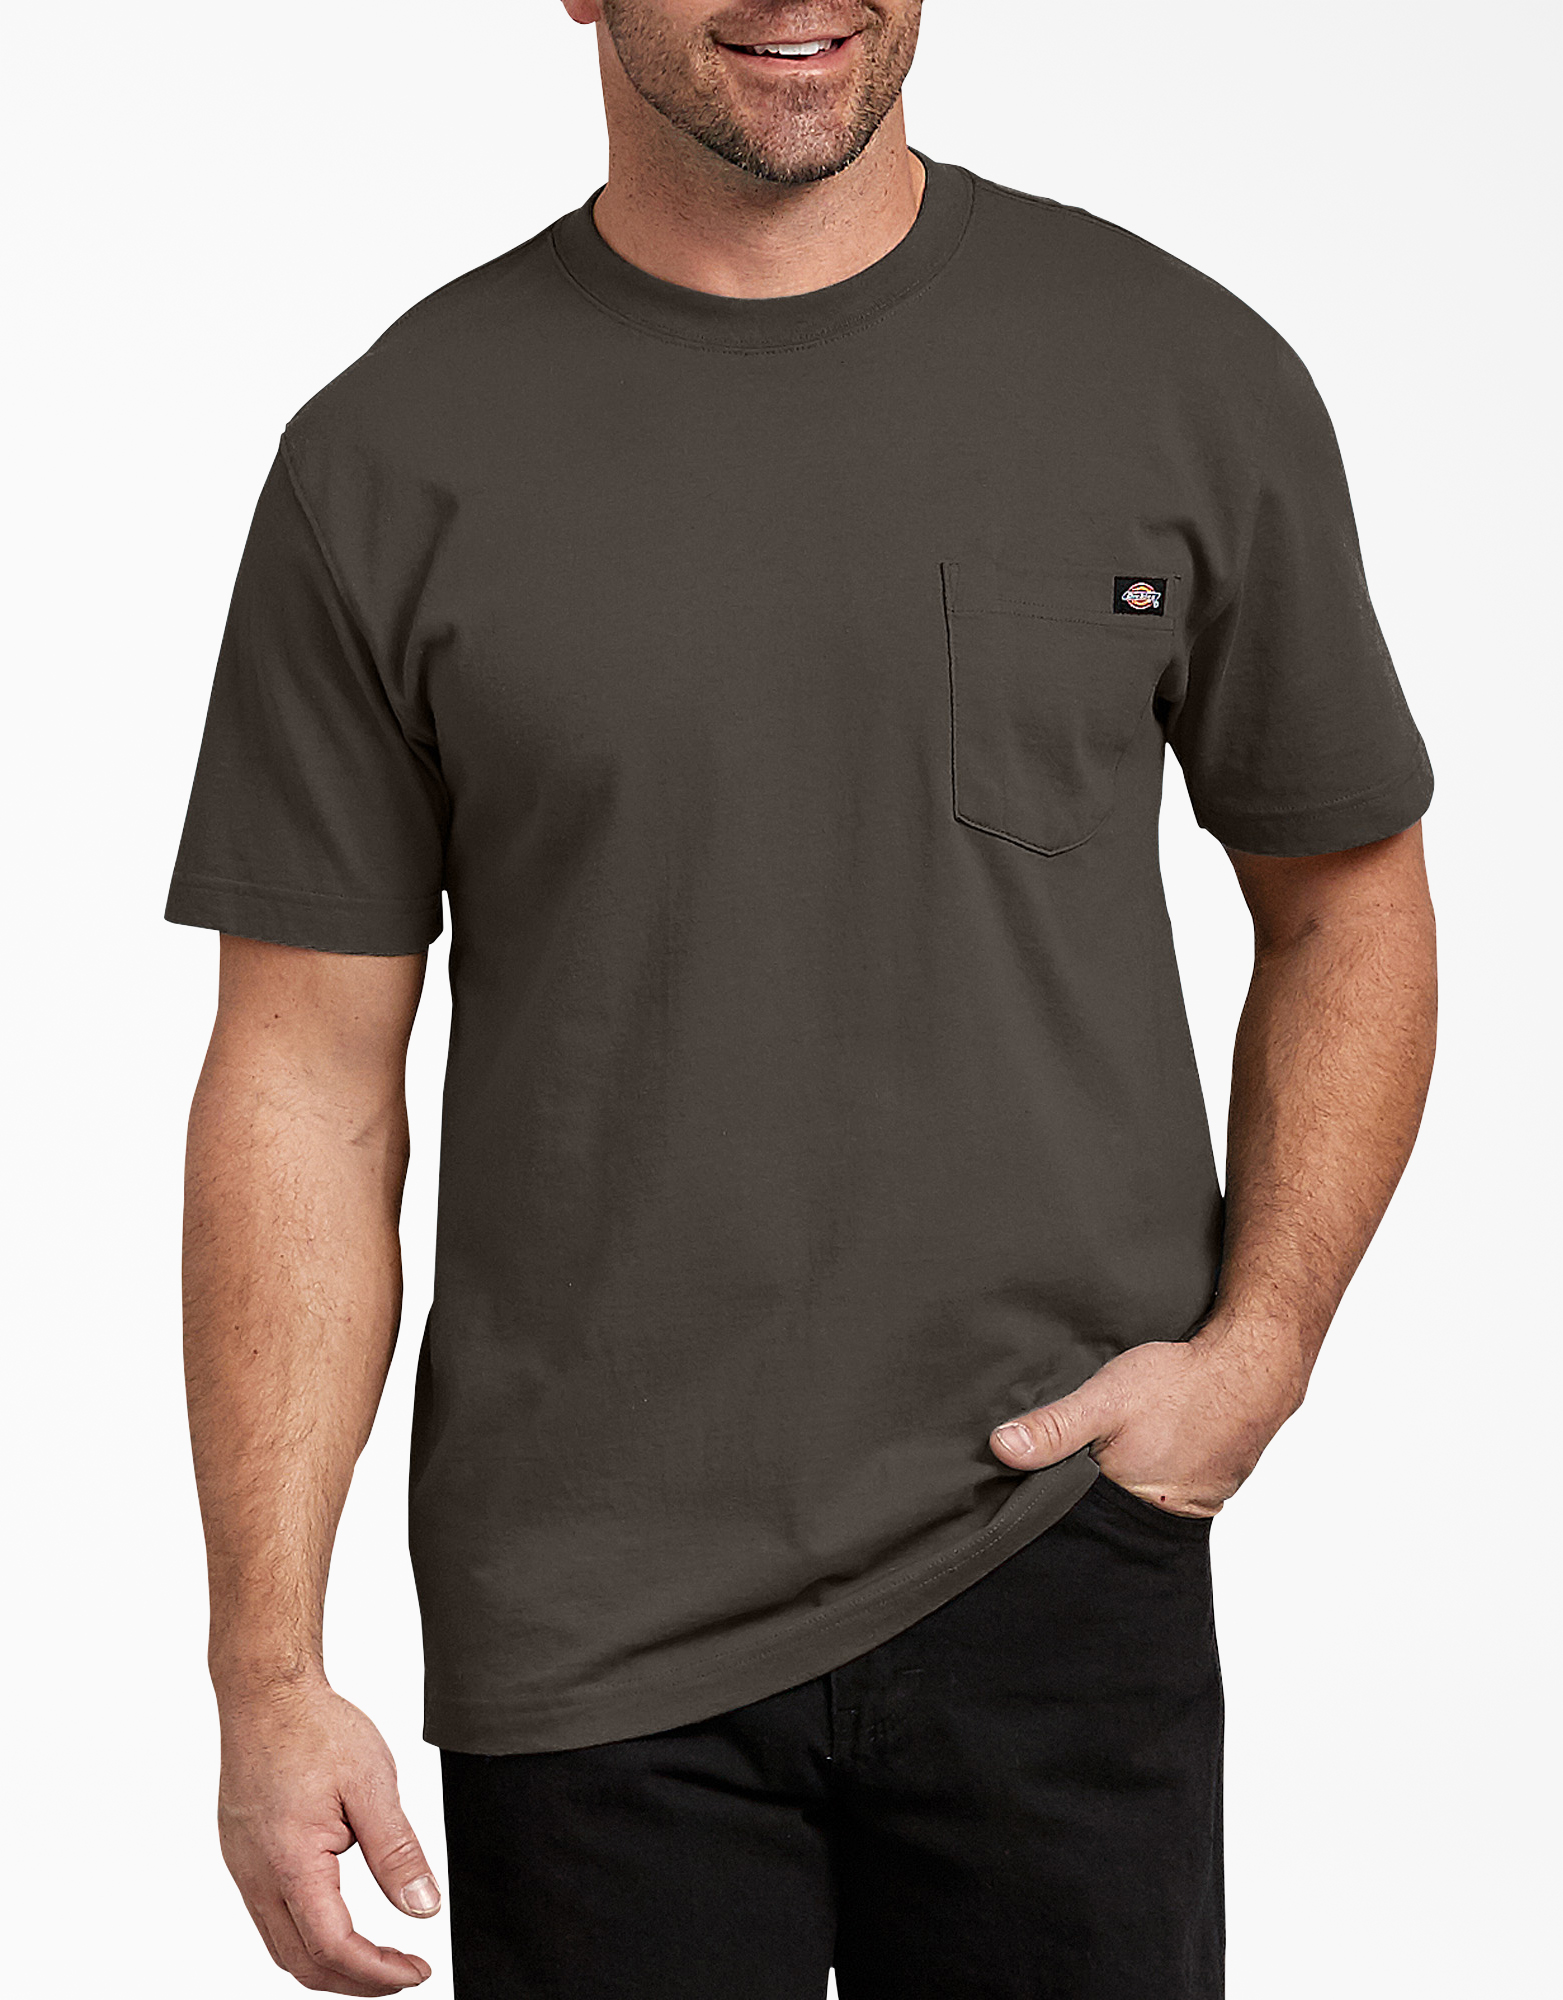 Short Sleeve Heavyweight T-Shirt - Black Olive (BV)